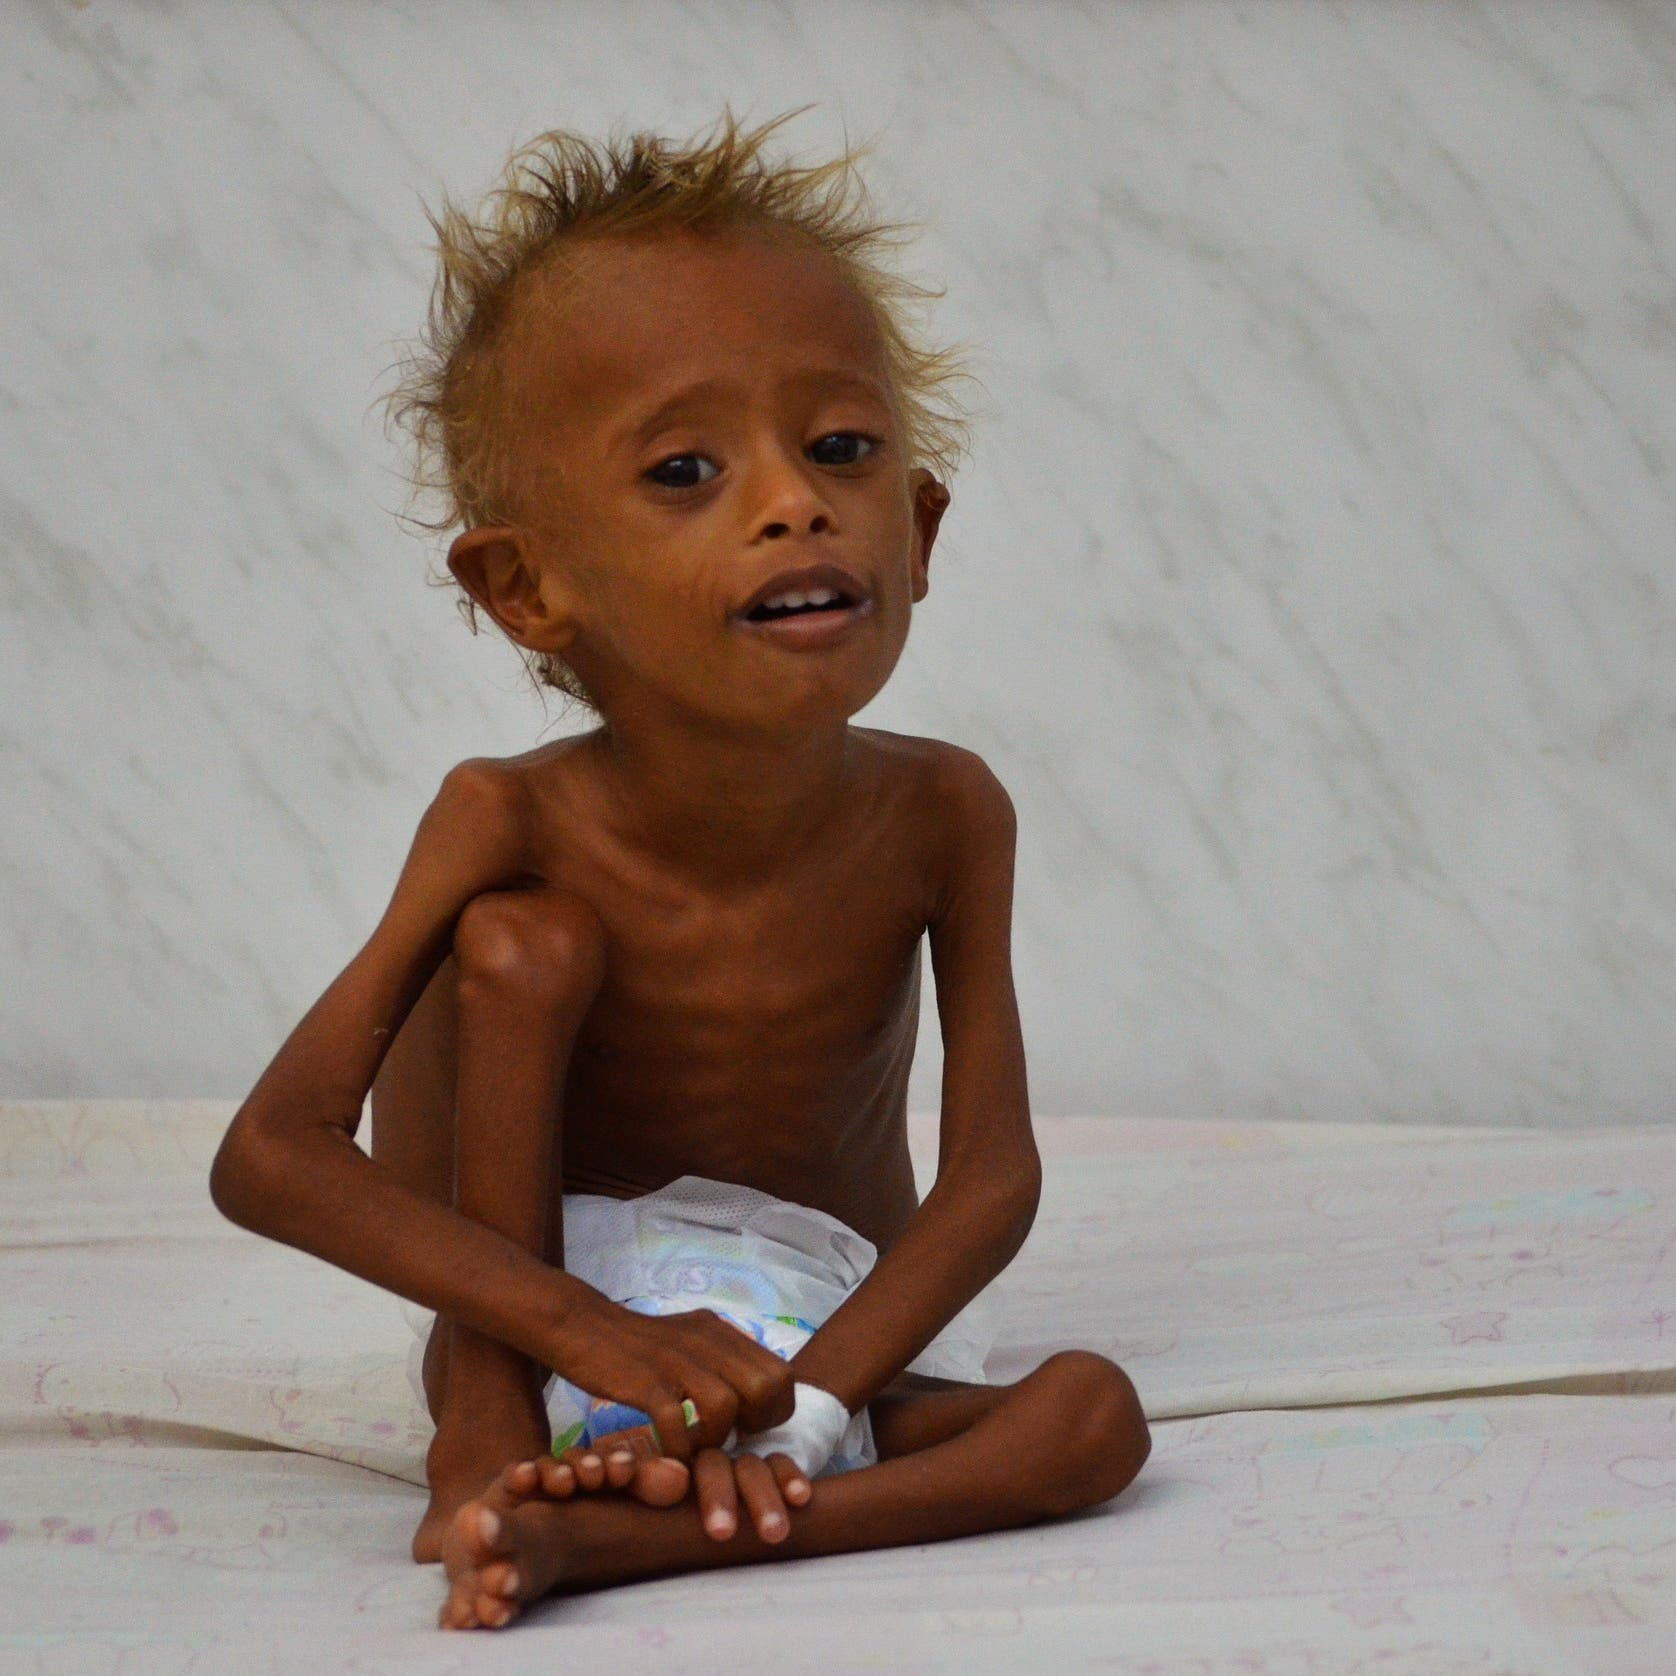 Eleven people die of hunger each minute around the globe: Oxfam